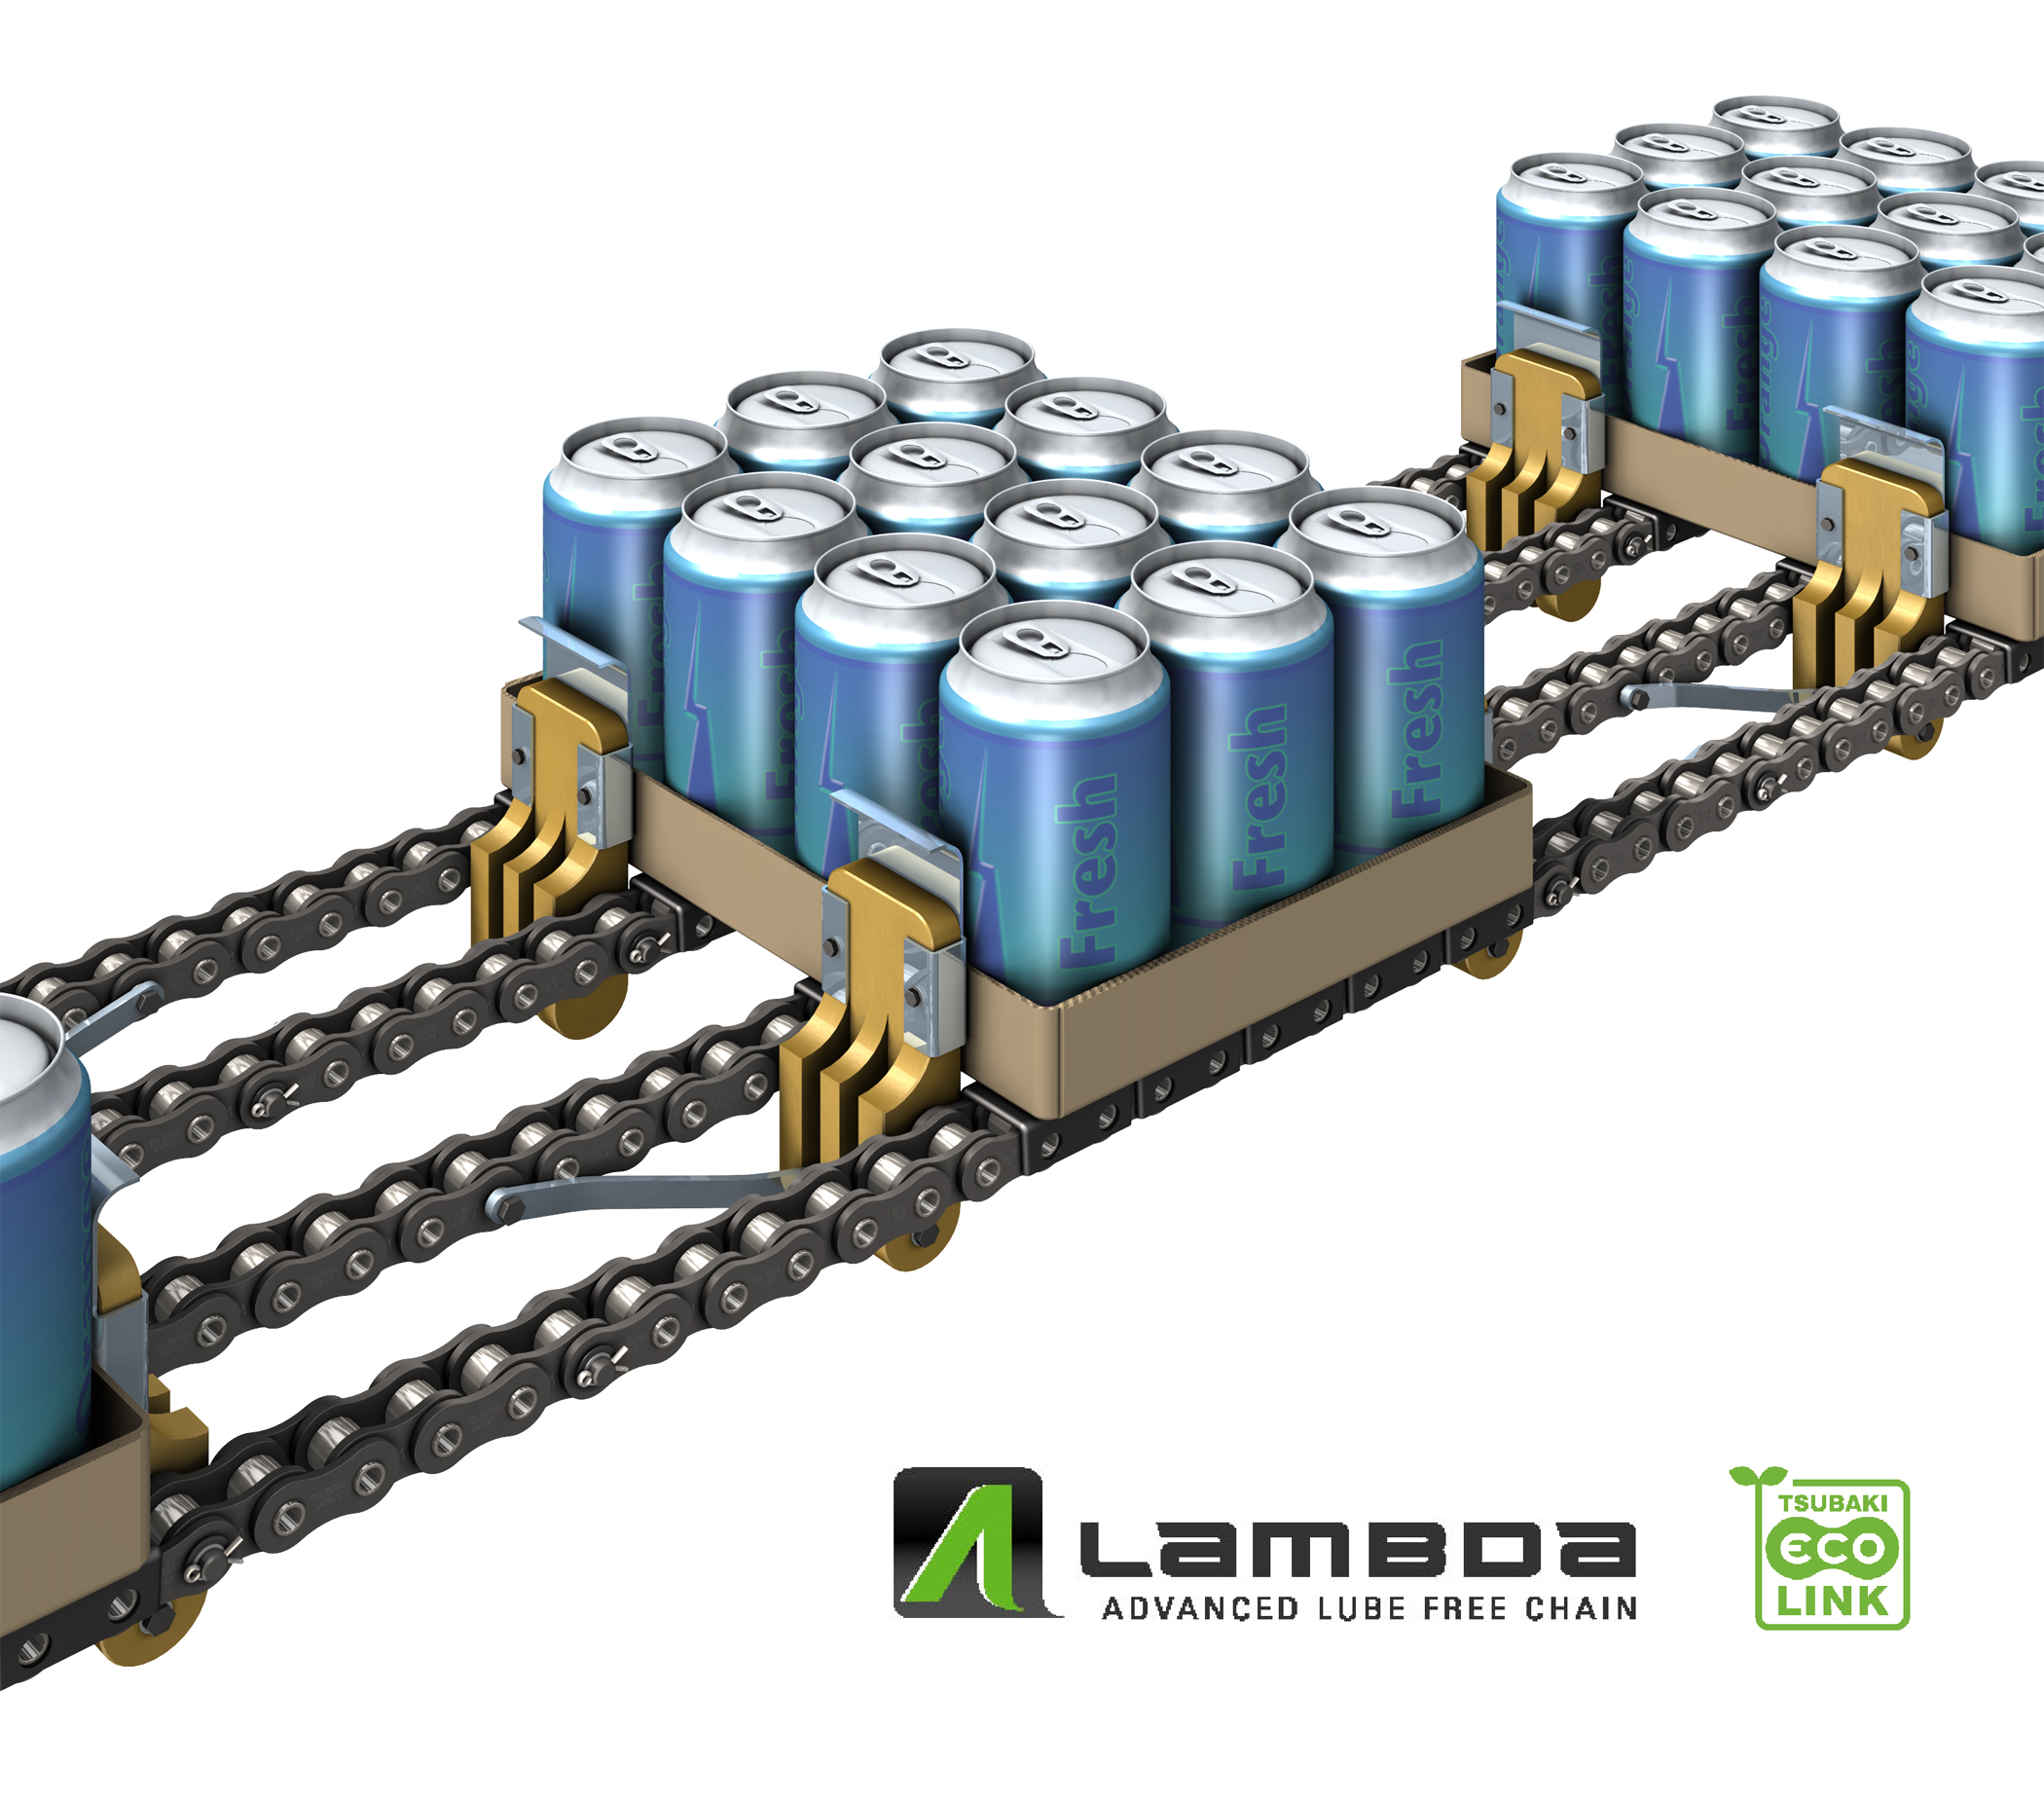 Tray packing chain offers unrivalled benefits to food and beverage industry